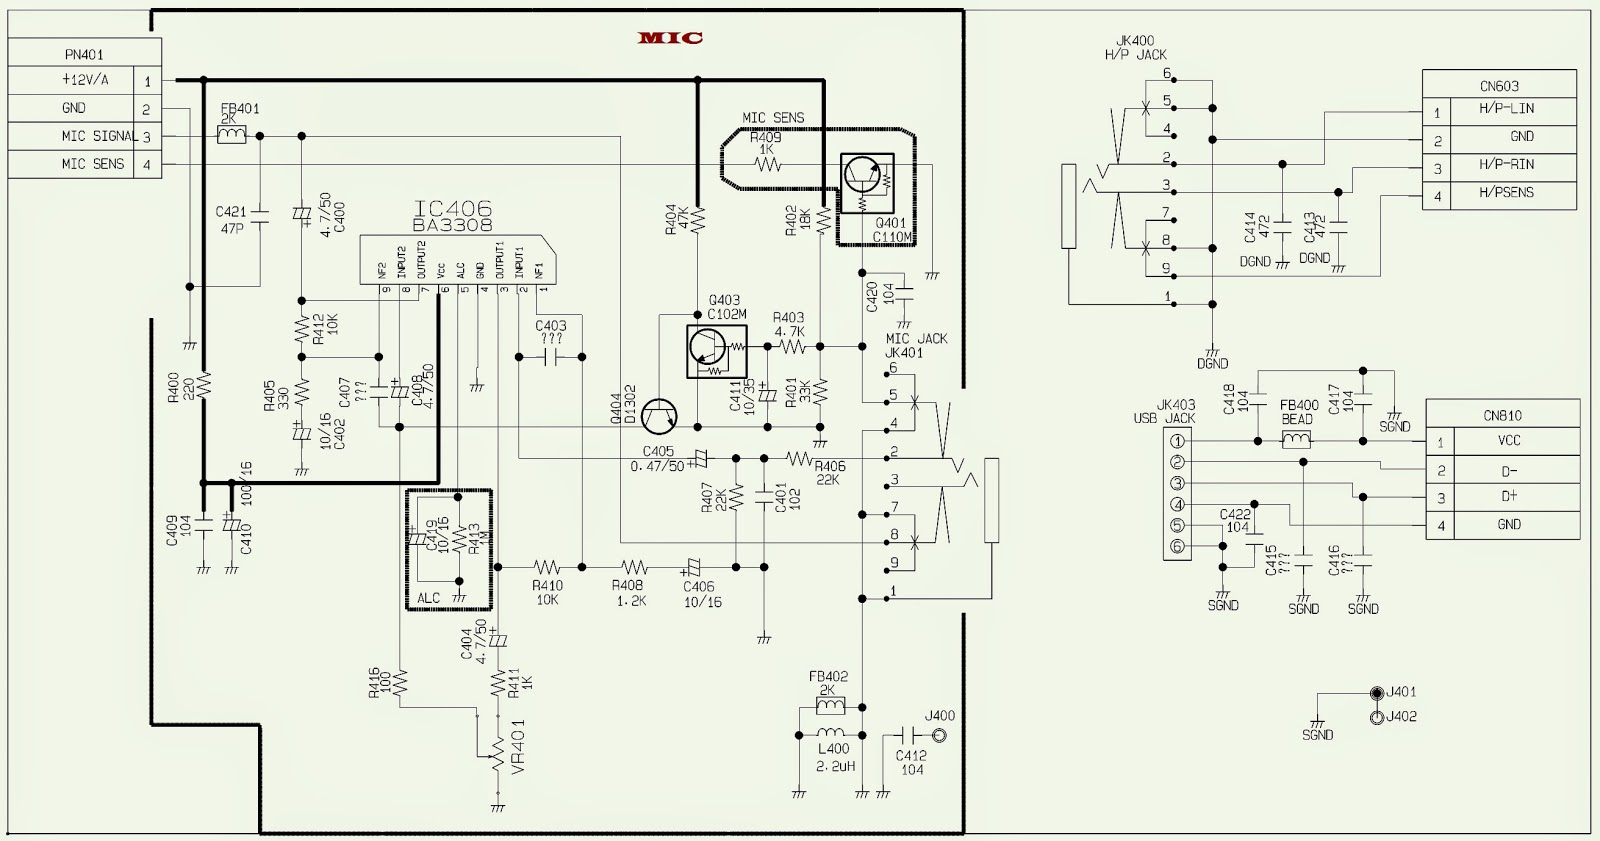 3 Cd Changer Dvd Schematics